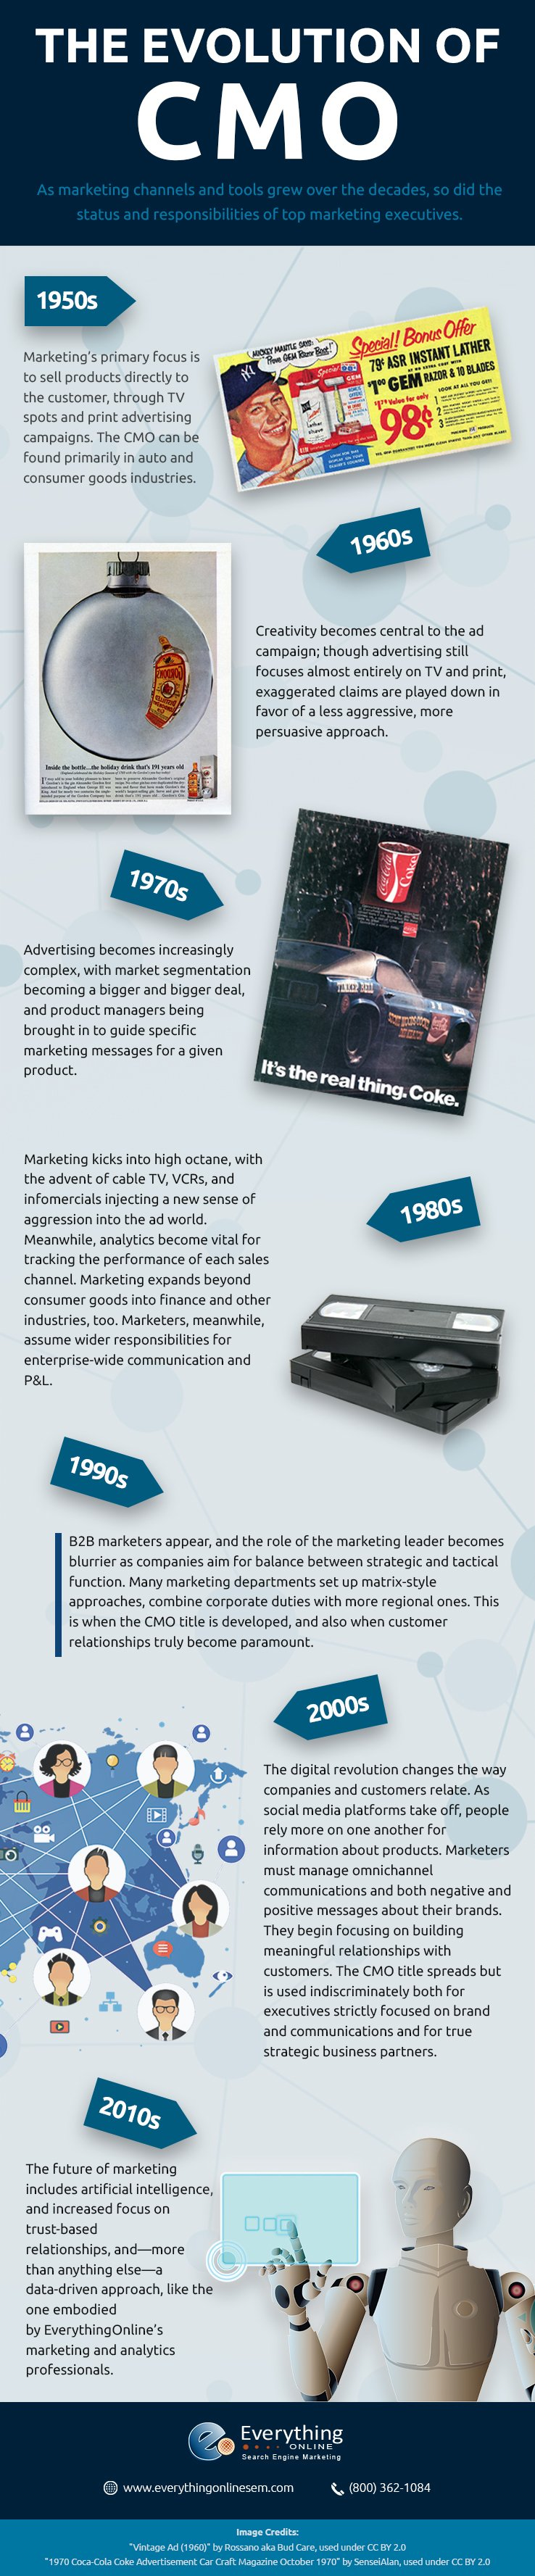 Evolution of CMO